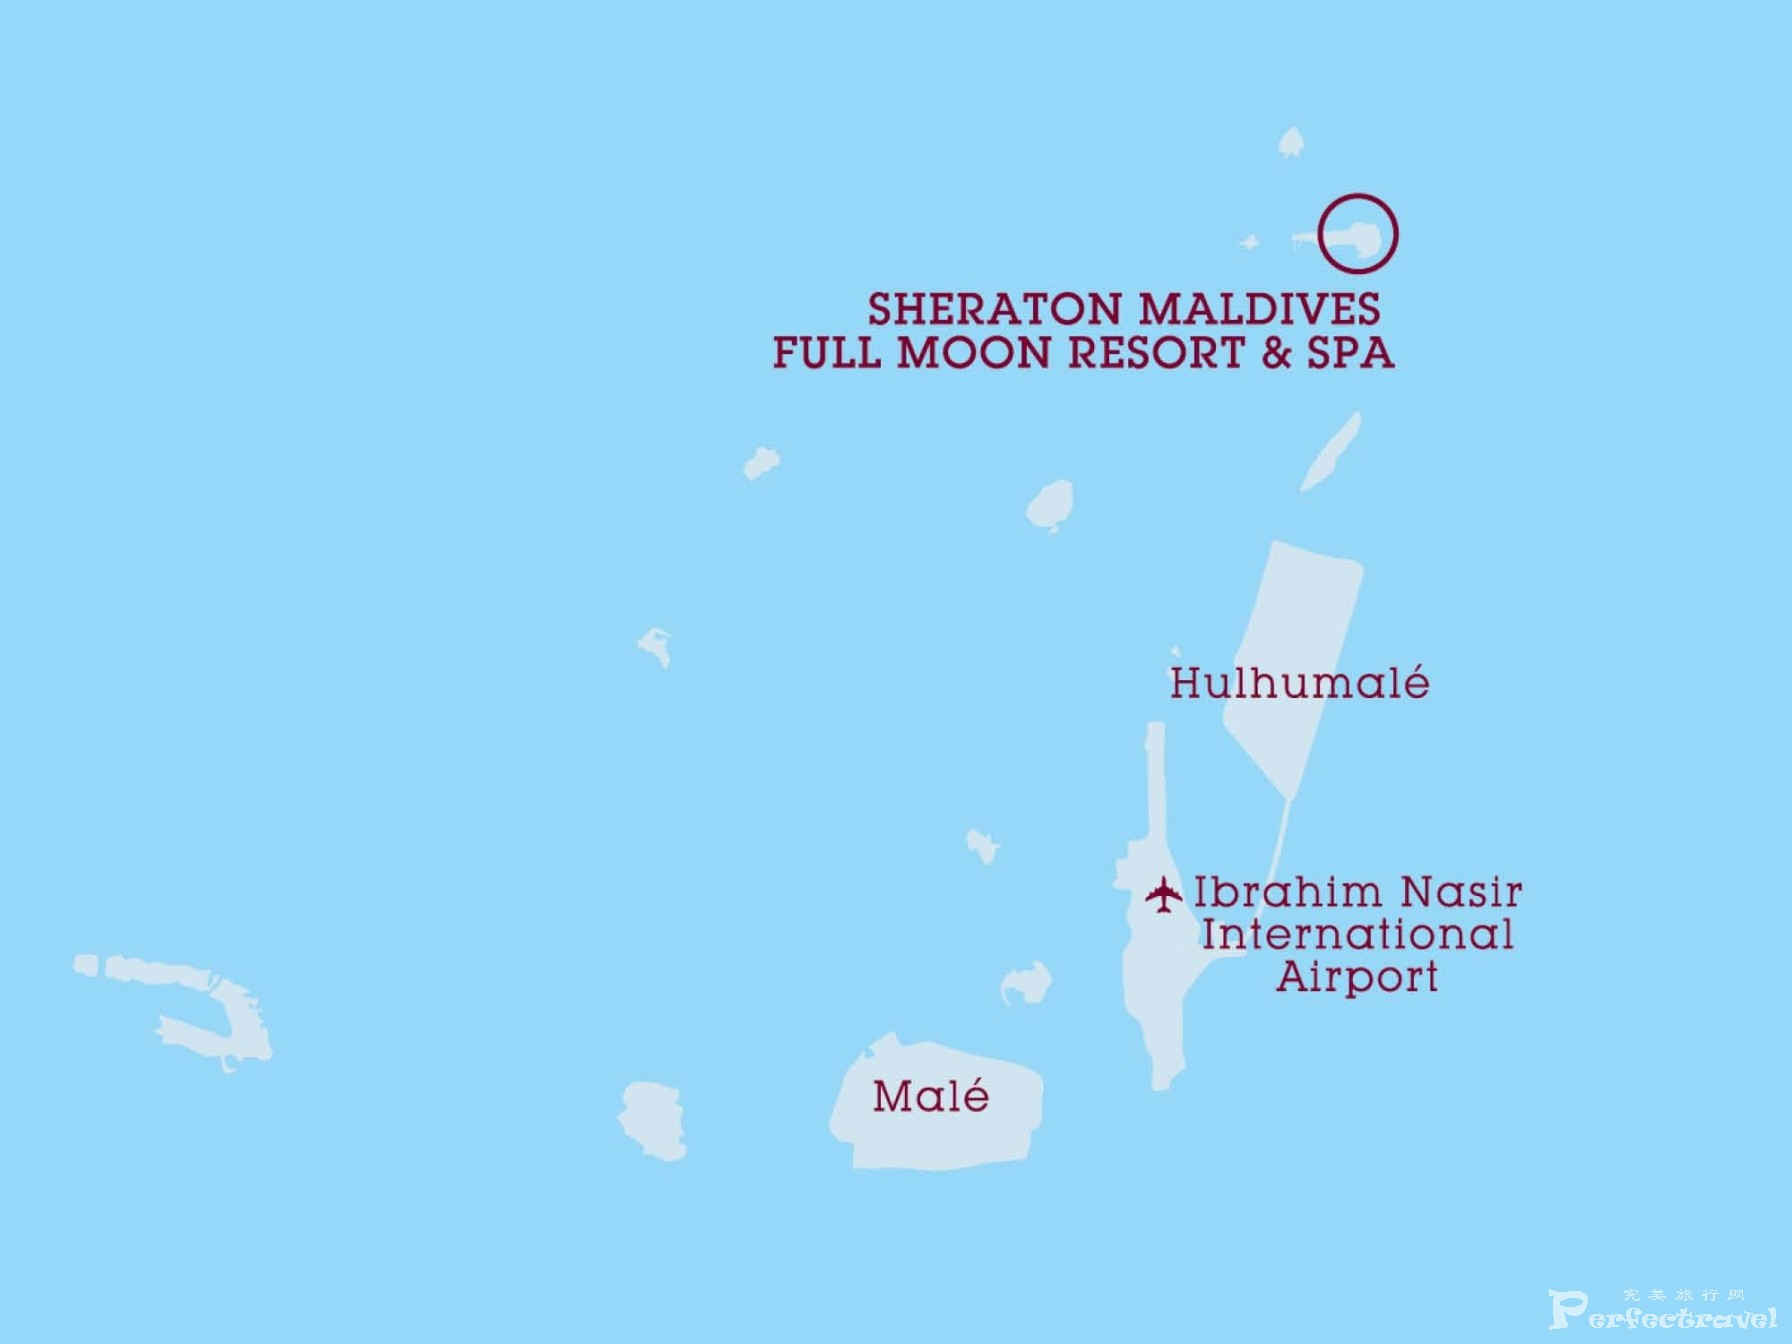 Sheraton Maldives - Overview Presentation 2015_Page_03.jpg